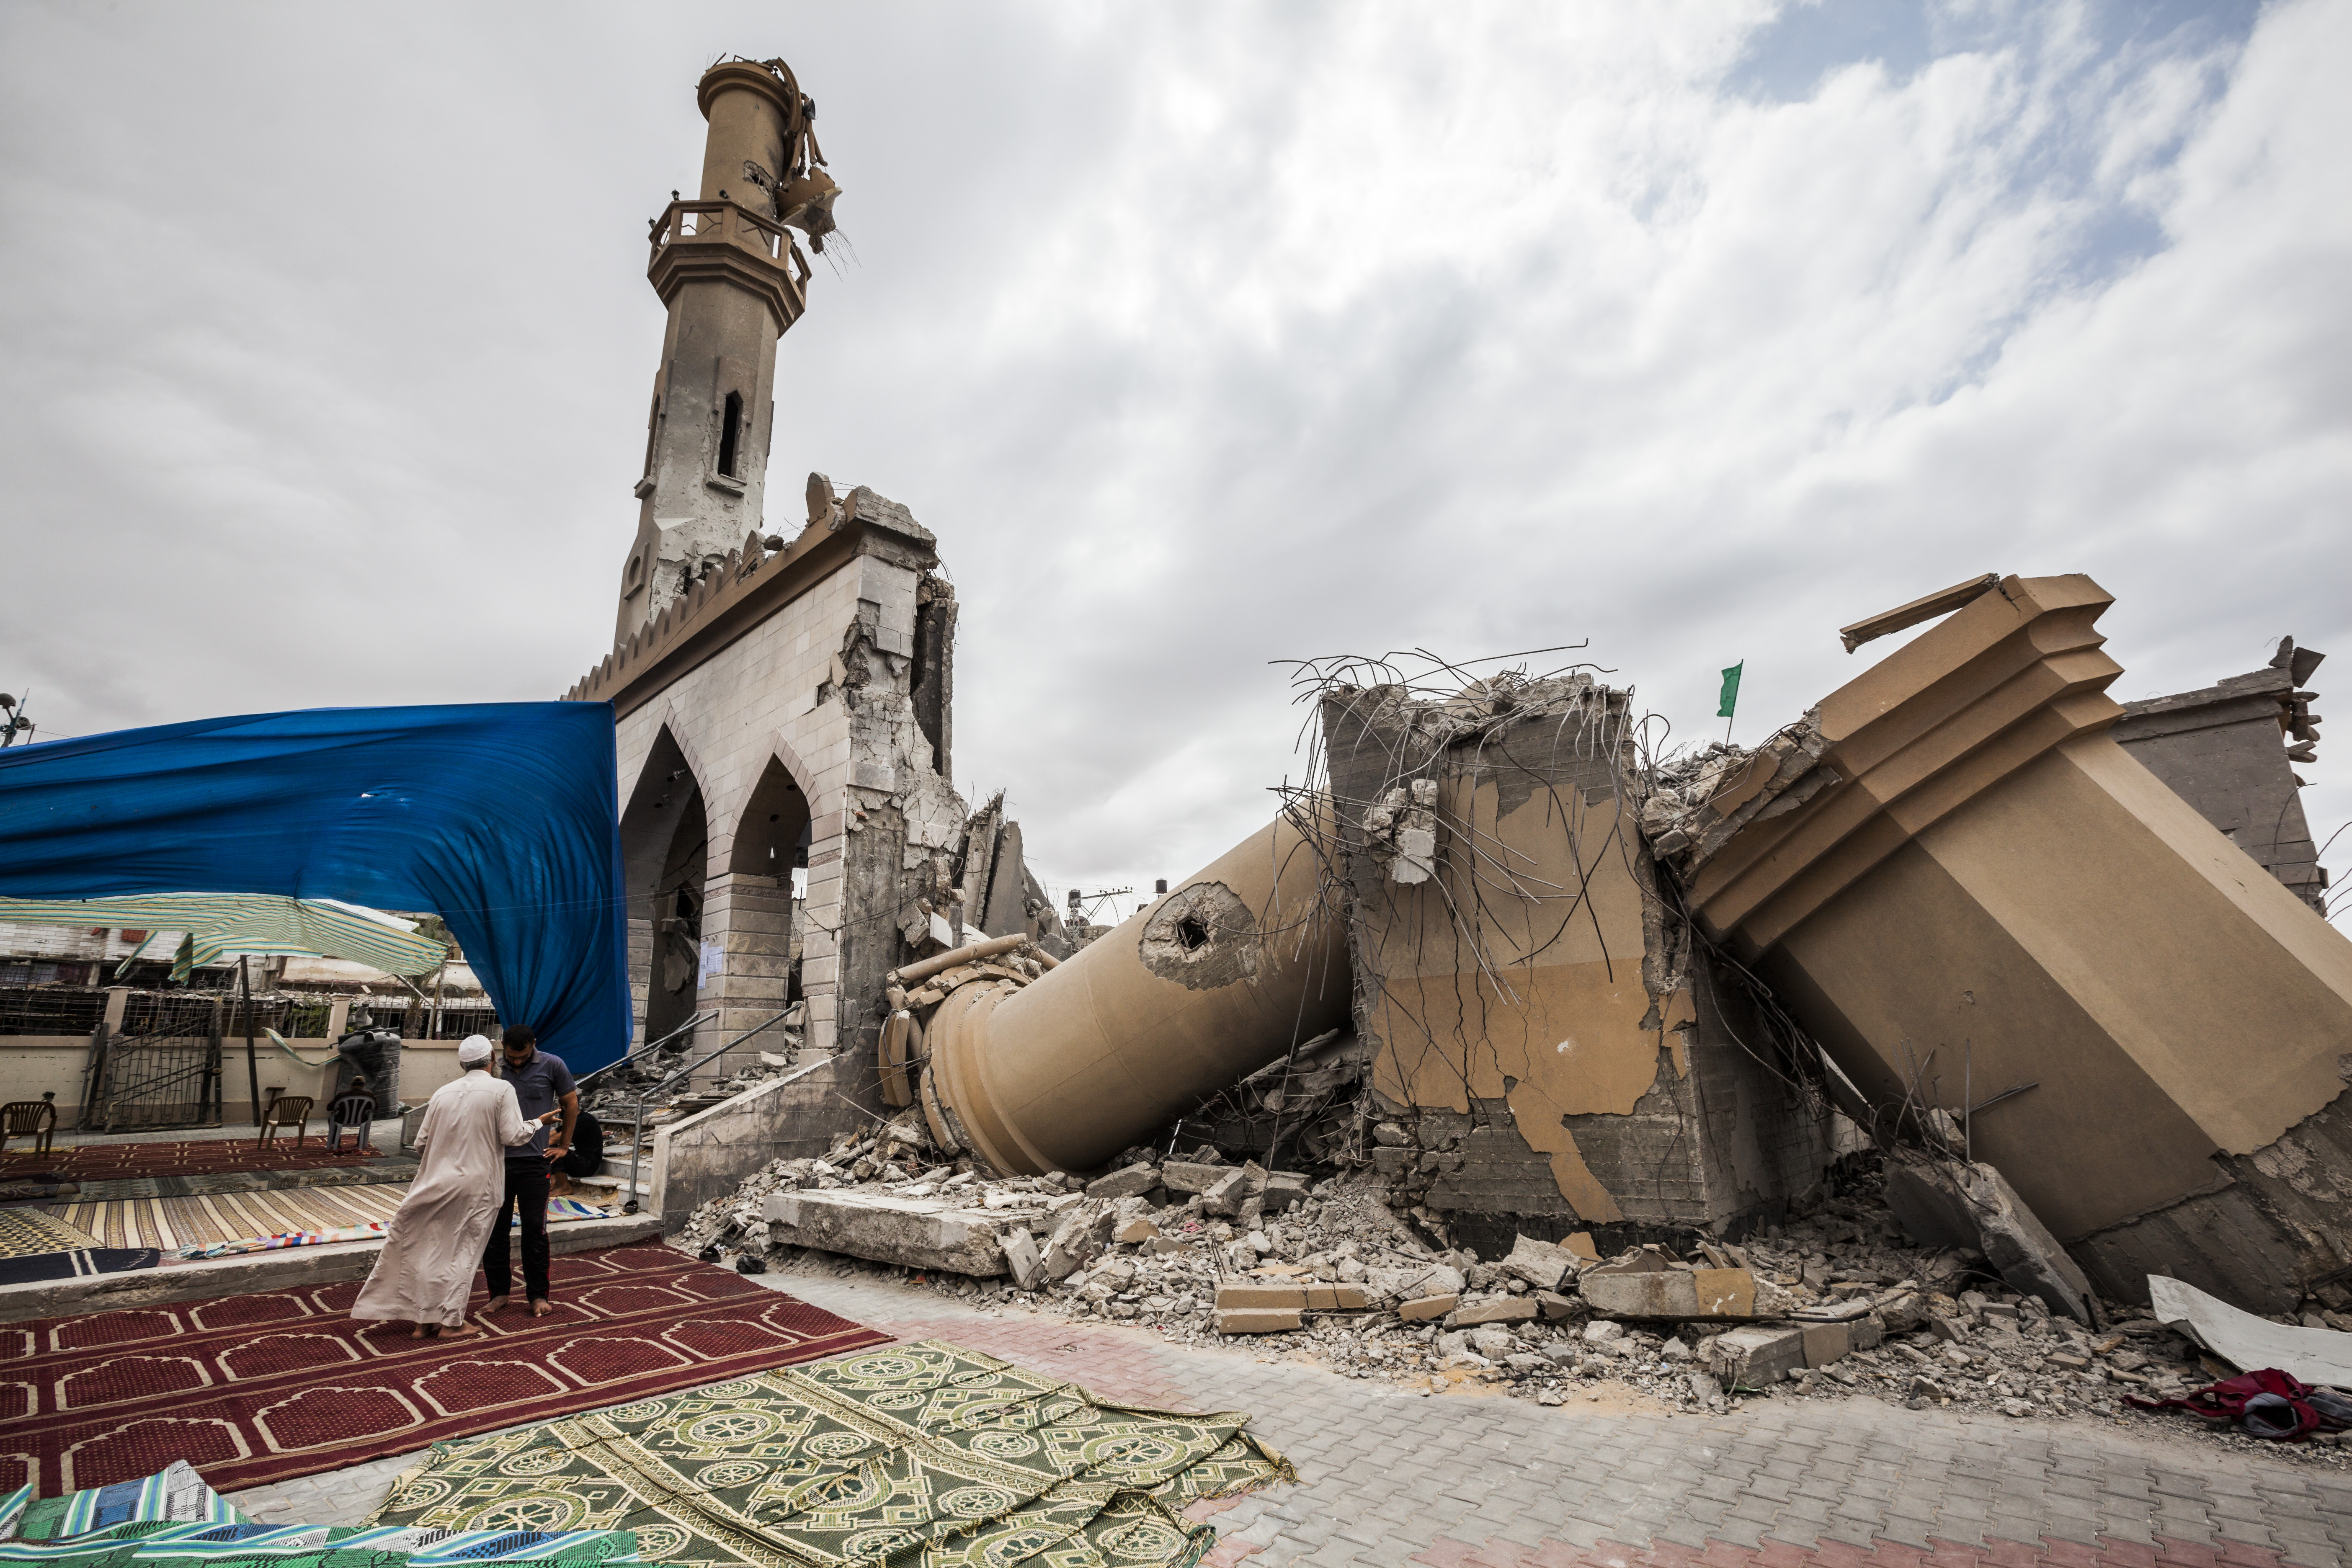 Destroyed mosques in Gaza after the last war against israel : Damage in the destroyed Omar Ibn Abd al-Aziz mosque in Beit Hanoun in the north of Gaza.